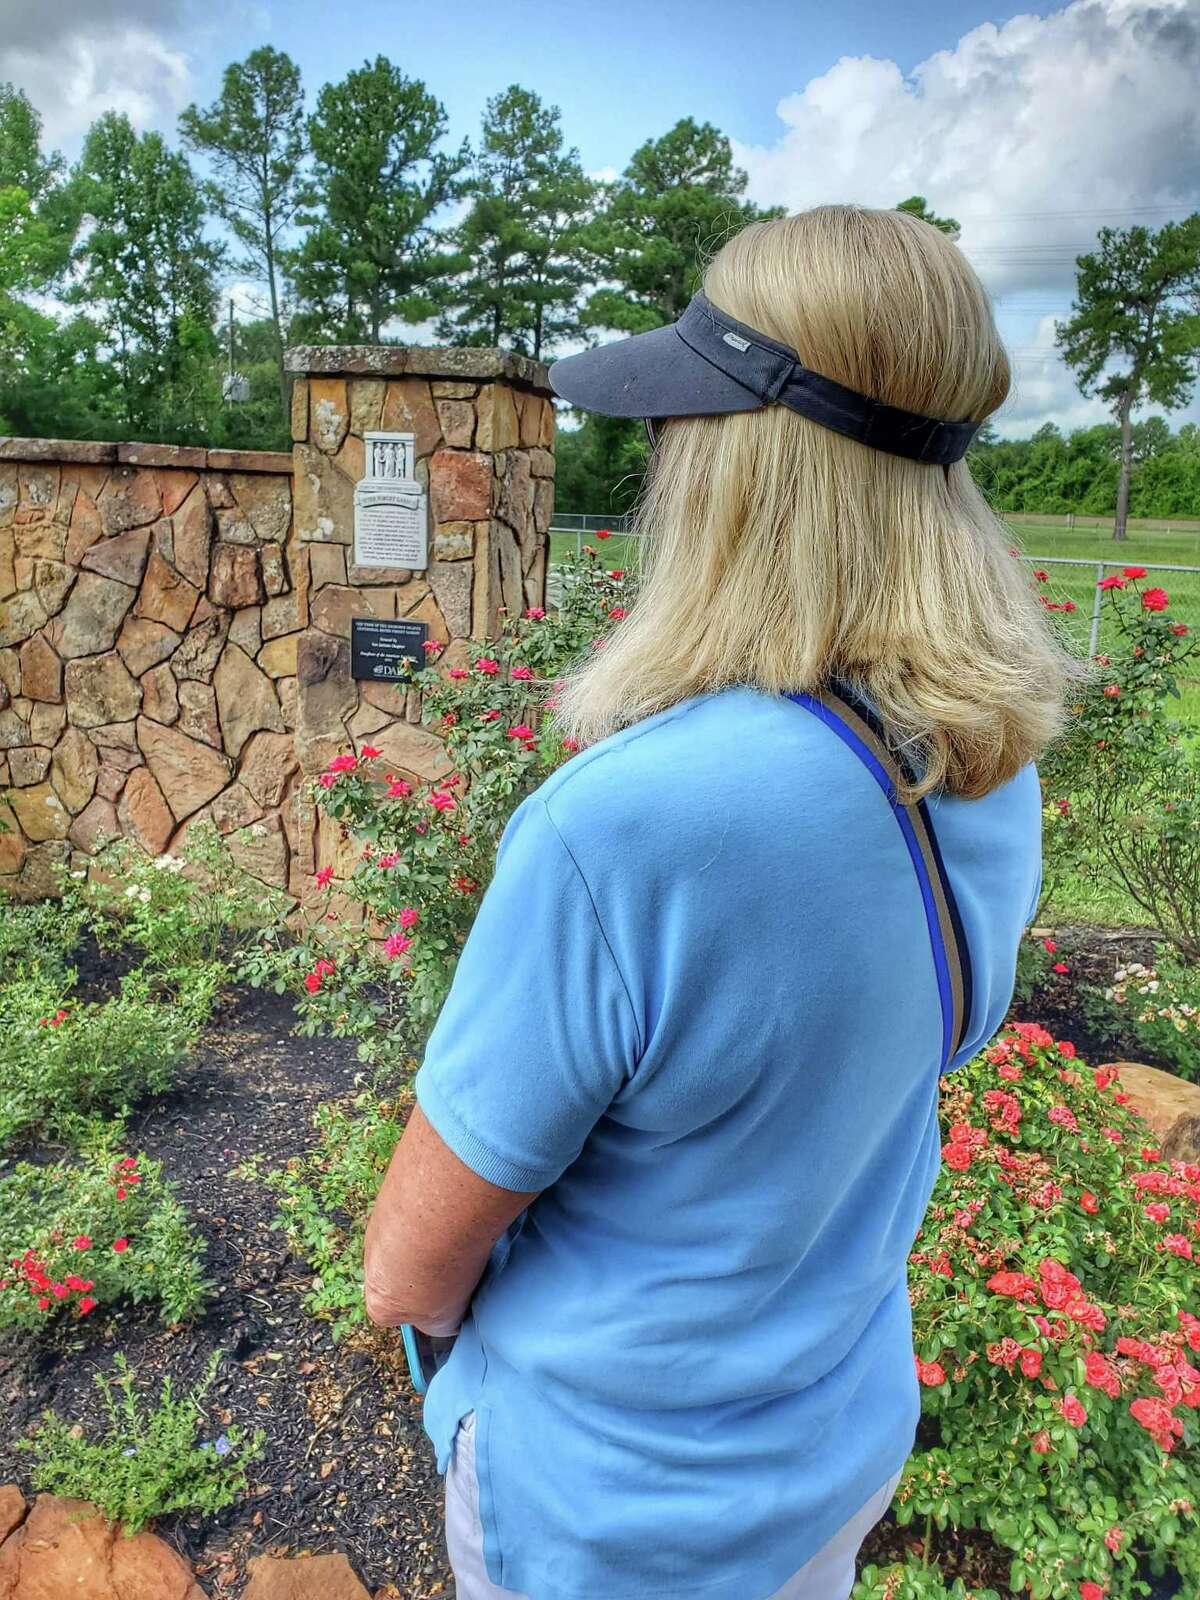 Tomball's new Never Forget Garden is now open to the public at Jerry Matheson Park on Ulrich Rd.